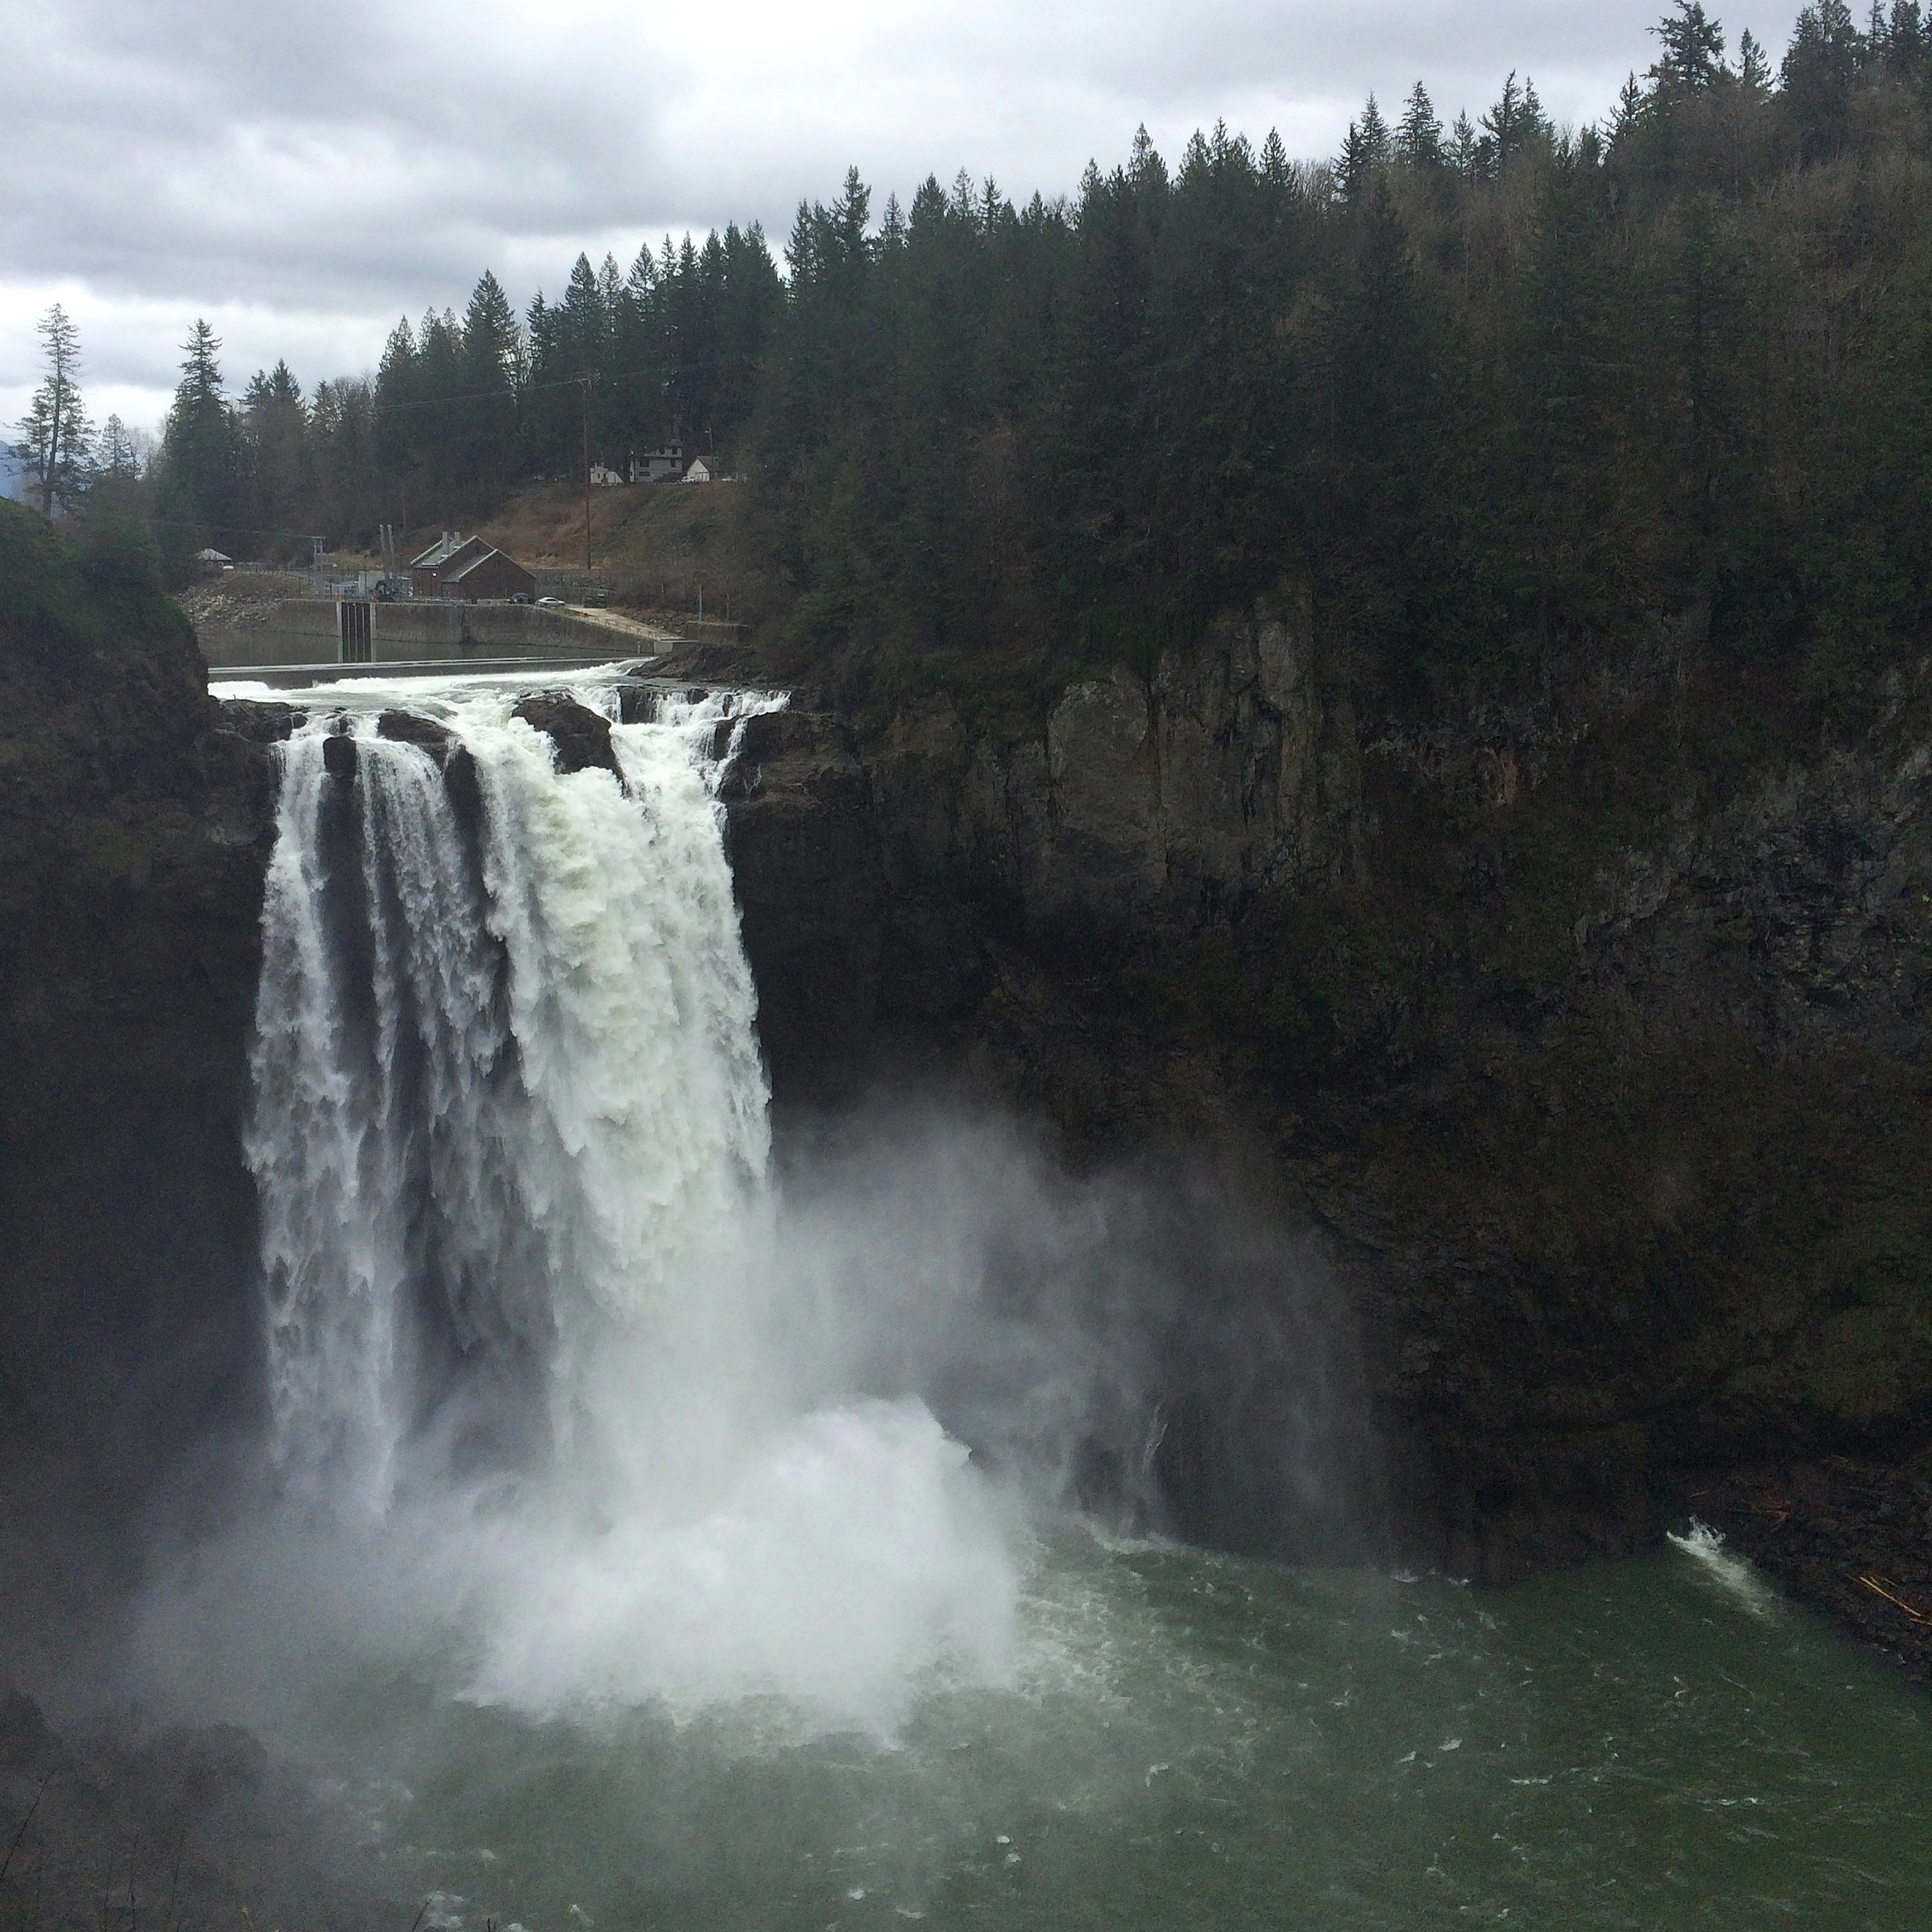 Snoqualmie Falls & The Salish Lodge - Photo by Thea Starr